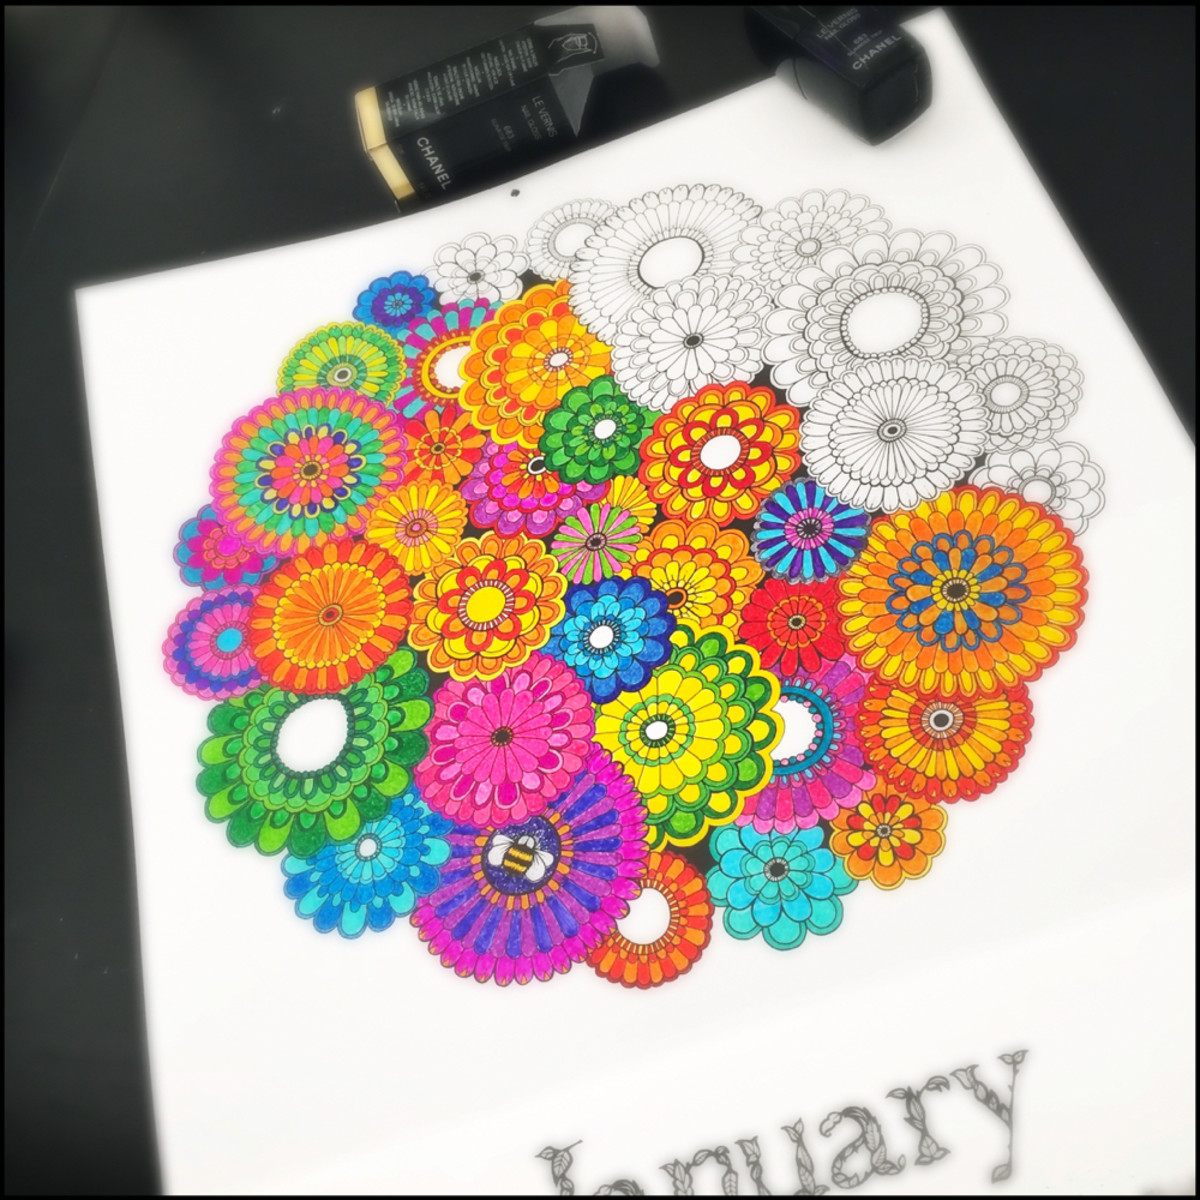 January Secret Garden Coloring Calendar 2016 Johanna Basford